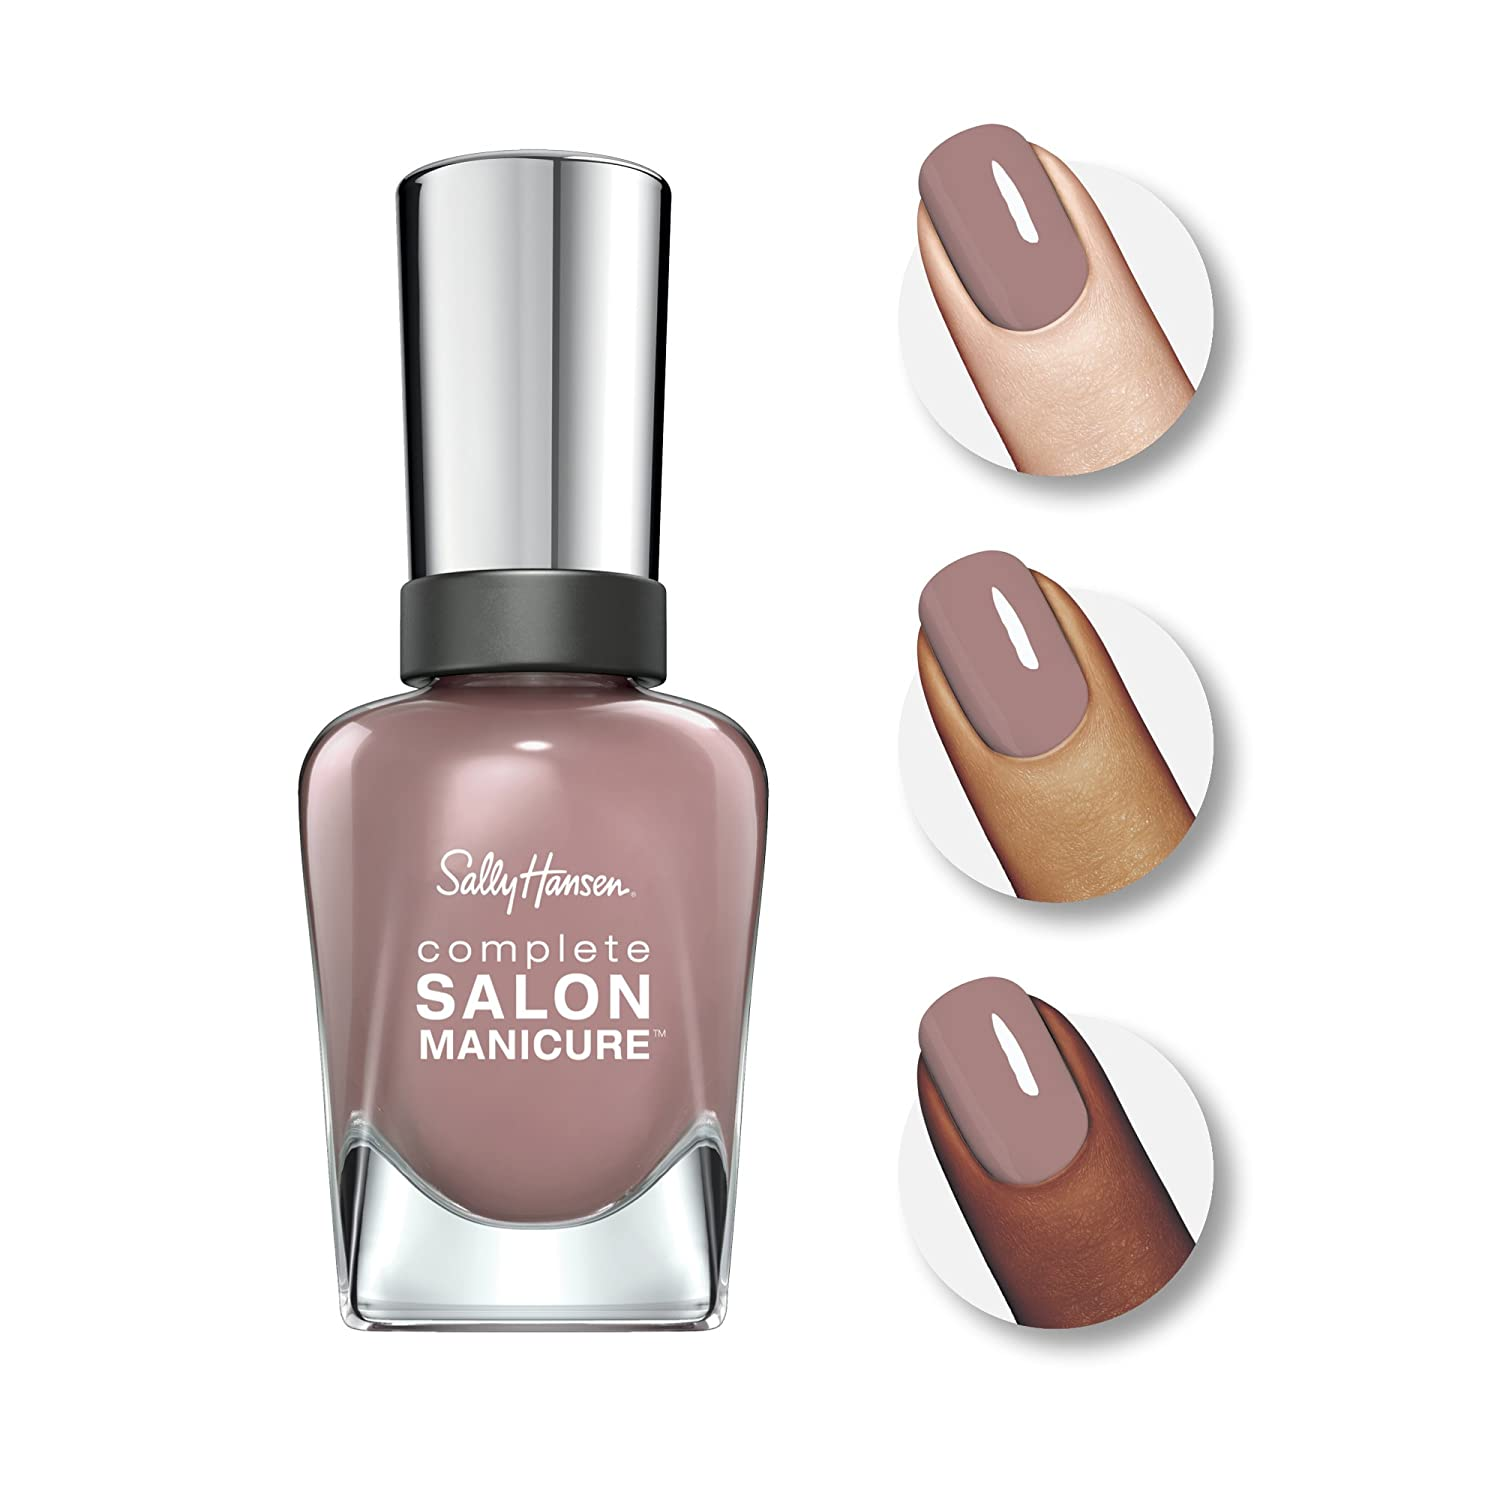 Amazon.com: Sally Hansen - Complete Salon Manicure Nail Color, Pinks ...